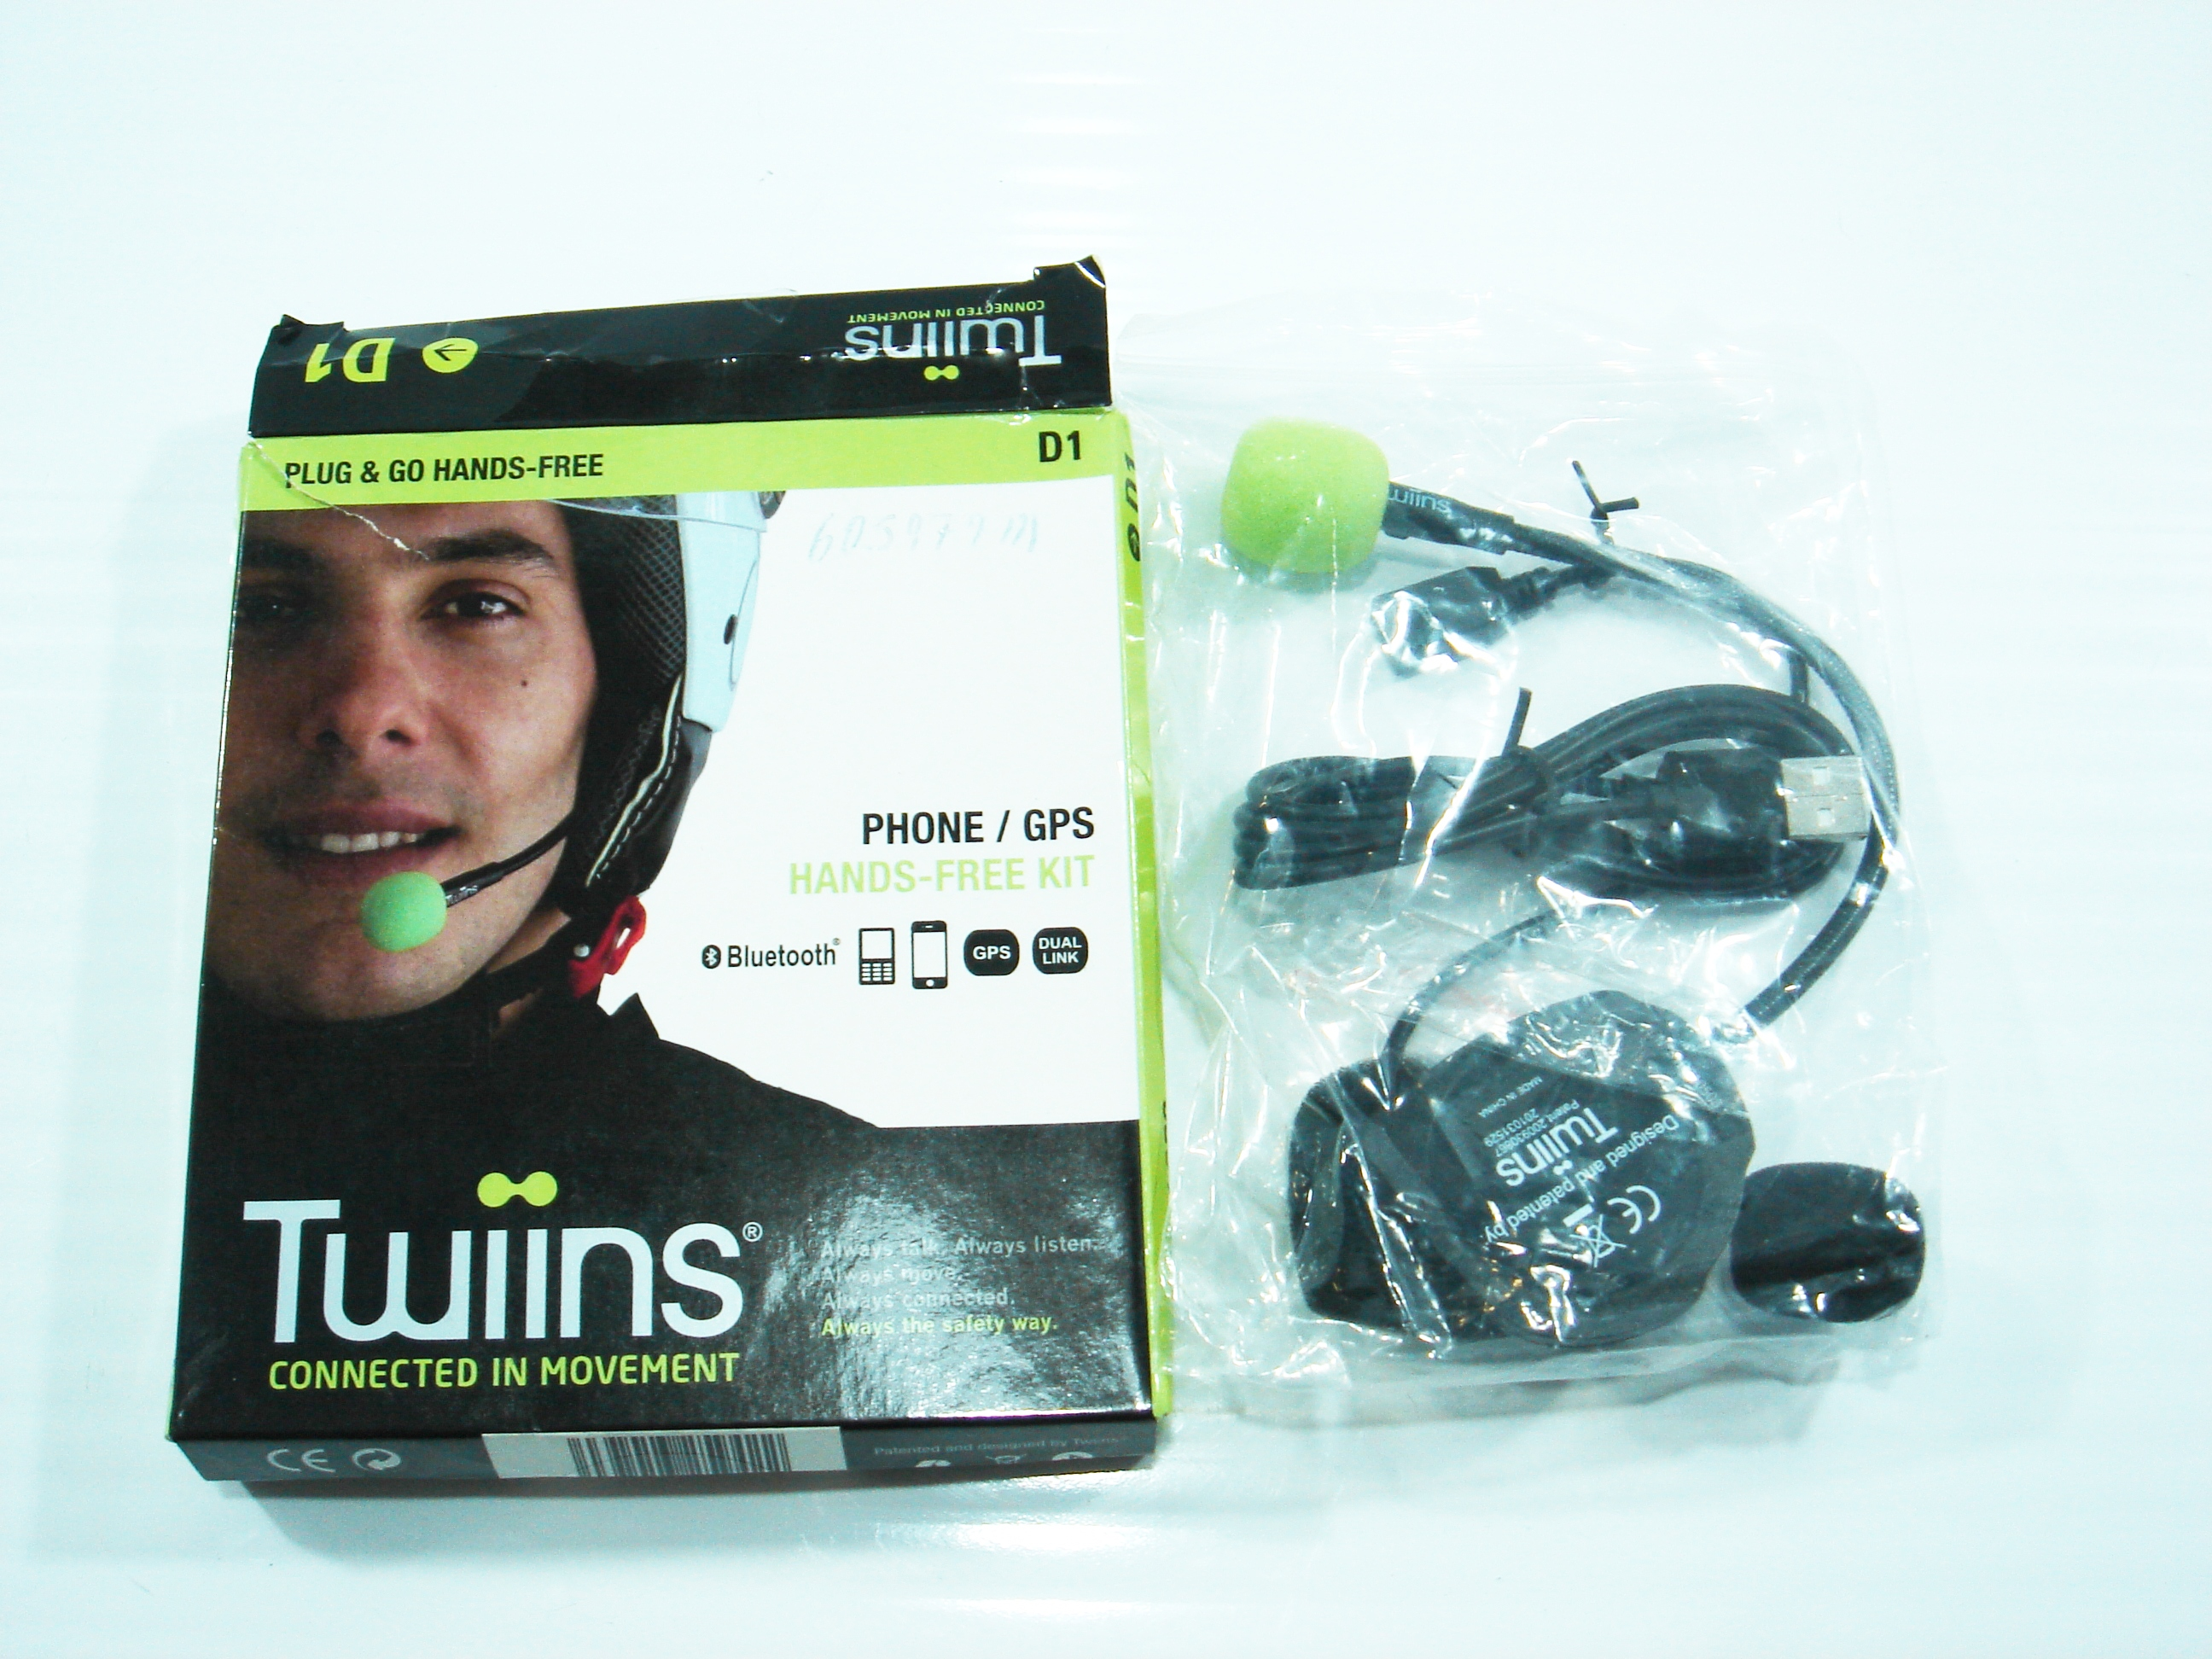 Kit Bluetooth Manos Libres Kit Manos Libres Bluetooth Piaggio La Boutique De La Moto